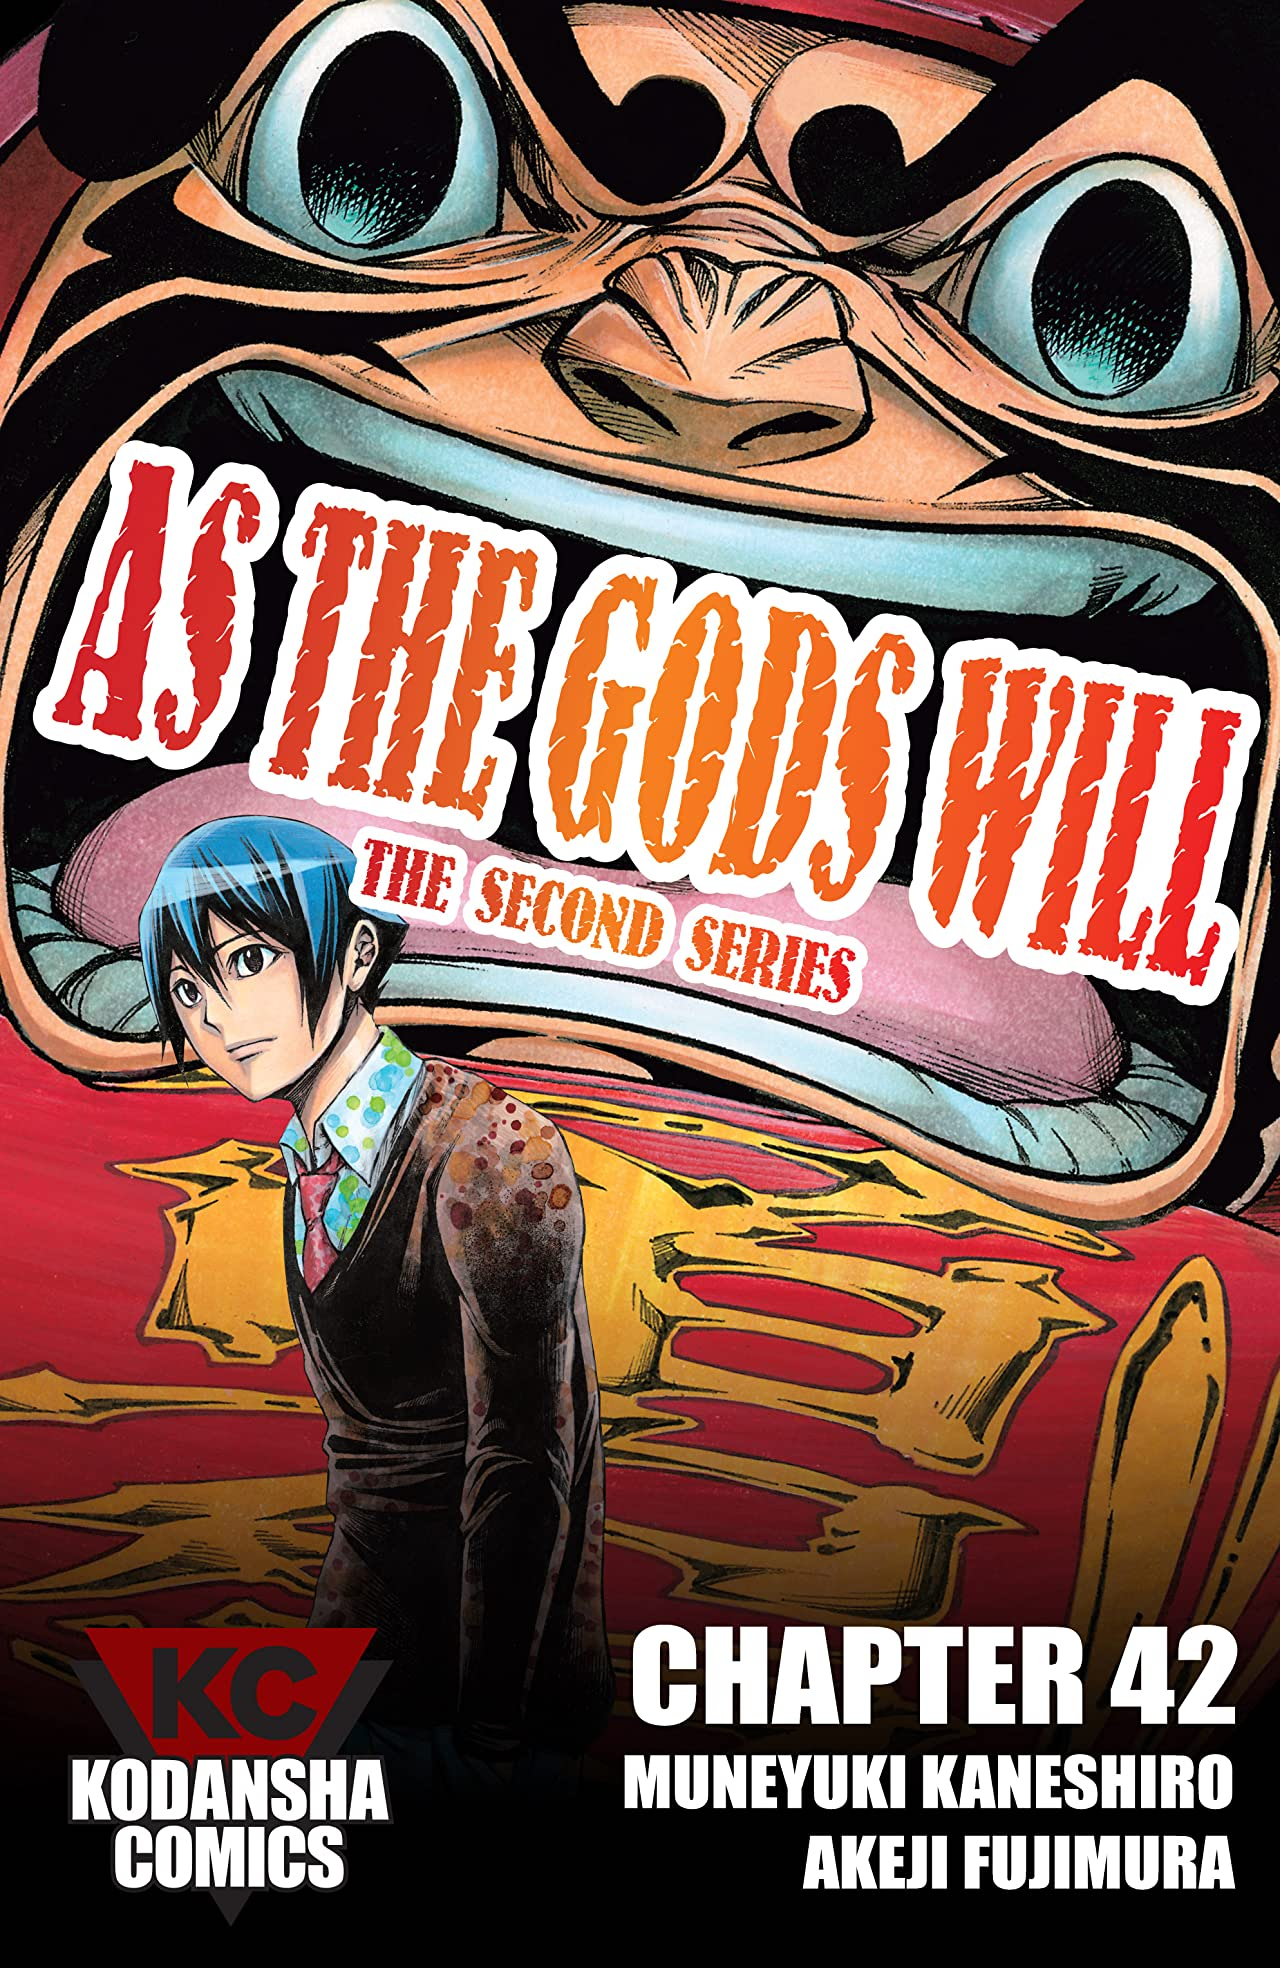 As The Gods Will: The Second Series #42